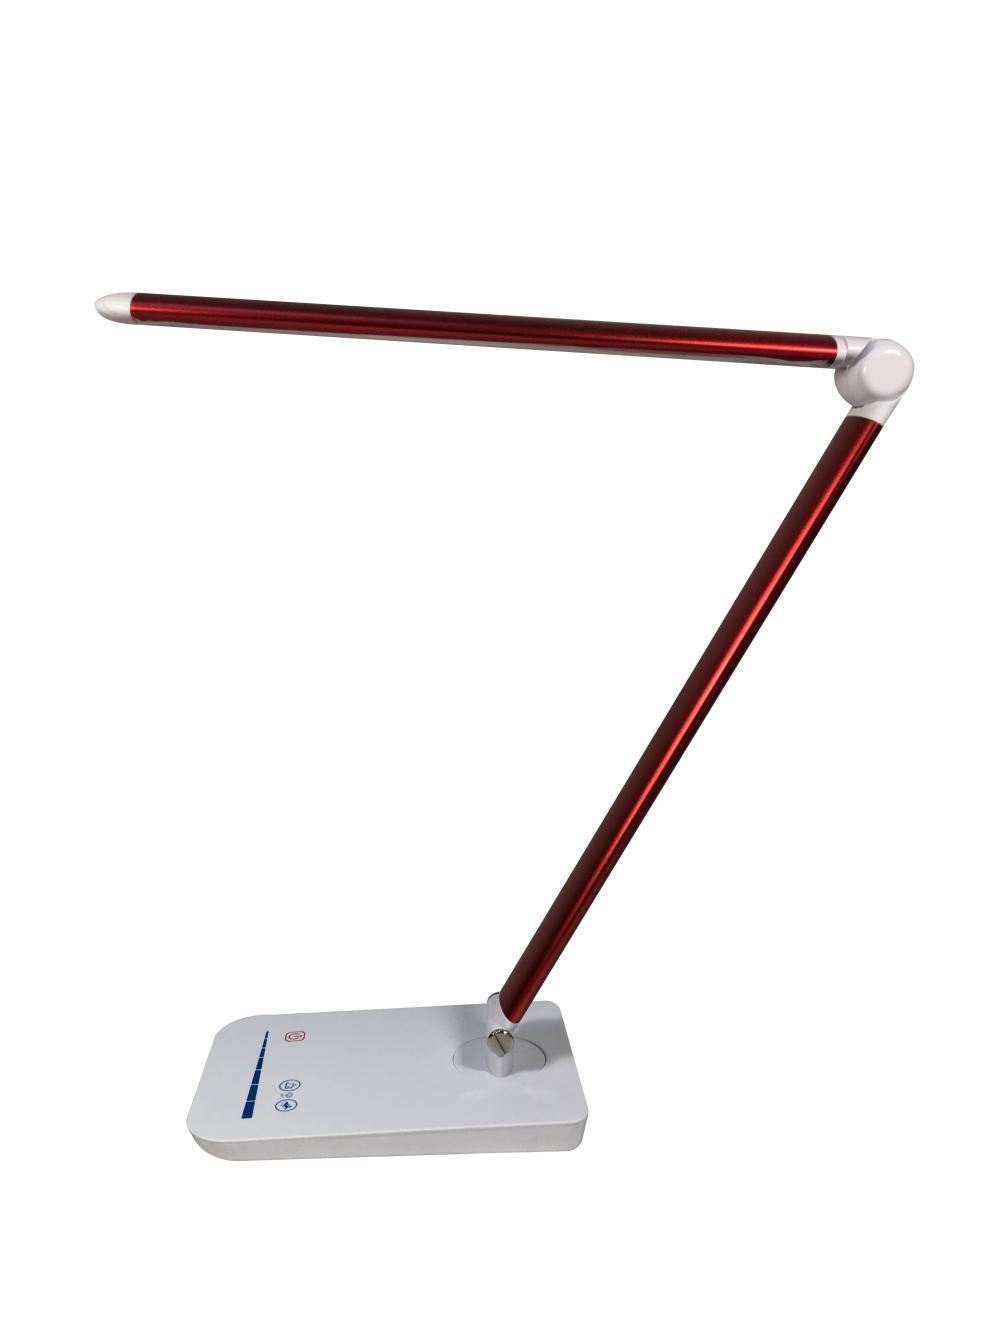 Home Office Dekoration Schreibtisch Lampe Red Color